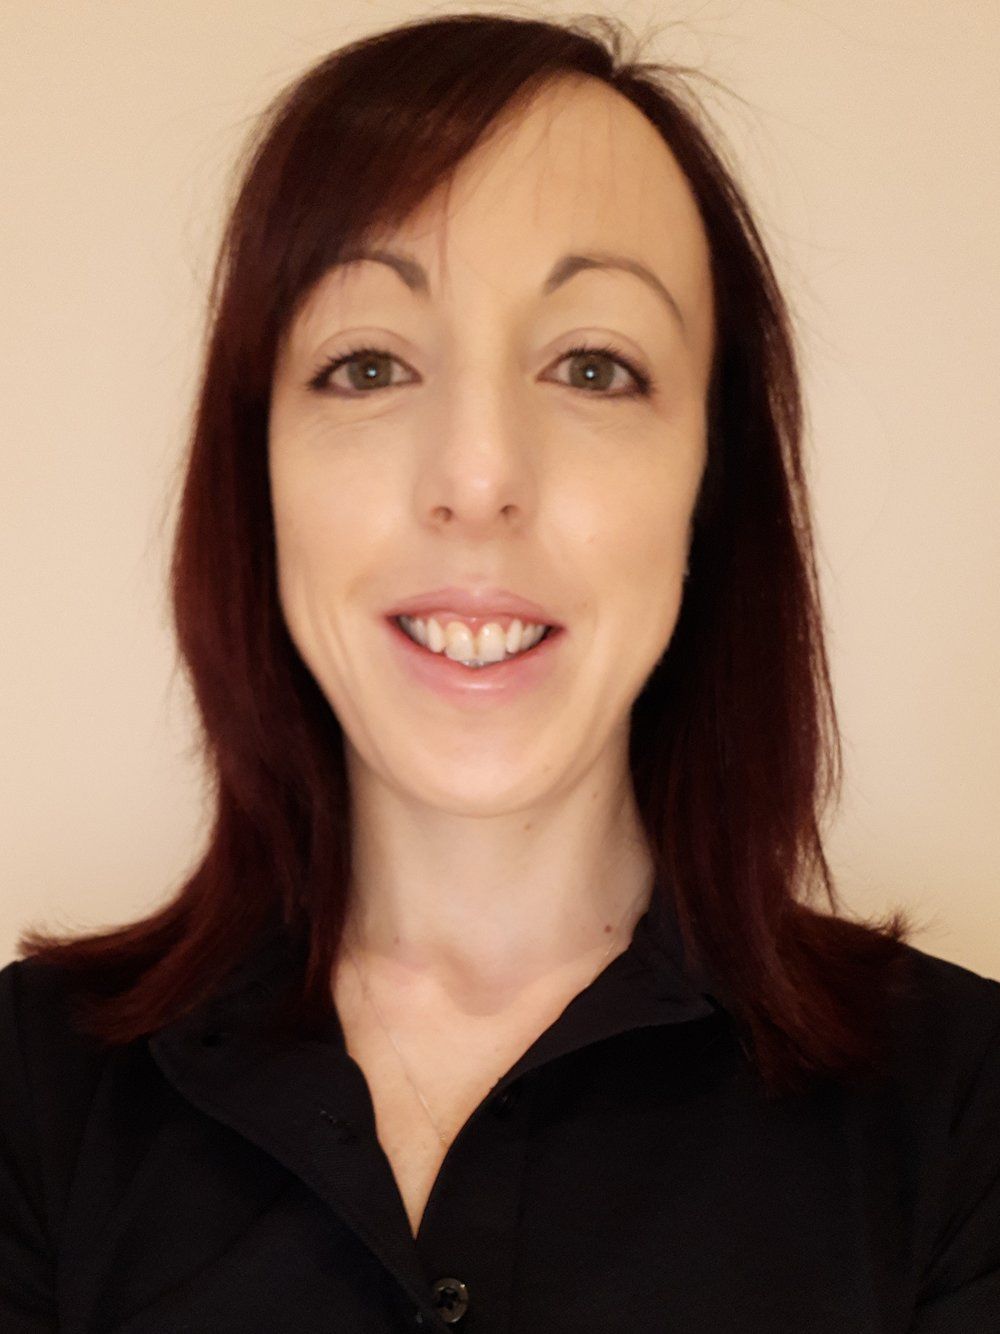 """Hi! I'm Clare. - I believe that everyone is an individual and we all have different goals, aspirations and reasons to train.It is my aim to bring the """"personal"""" back into personal training!Enjoyment and fun is the key to sustainability and this is the most important aspect of training to me.I provide a complete approach to personal training by incorporating exercise, nutrition and lifestyle advice. All these aspects are important and need to be balanced to allow you to reach your full potential both in your sport and your every day life.I aim to bring fun and variety to your workouts in a challenging yet enjoyable way. I want you to experience the love for exercise, sport and fitness that motivates me daily.I was a Solicitor for 9 years and although I enjoyed this career my true passion has always been in sport and nutrition.I have always been a sports fanatic. I grew up playing many team sports and continued into adulthood playing hockey.My true love is running and I have competed from a young age. As an adult I have ventured into endurance running completing ultra runs, marathon, half marathons and 10ks. I balance my running with strength training, swimming and Pilates.""""What seems impossible today will one day become your warm up"""